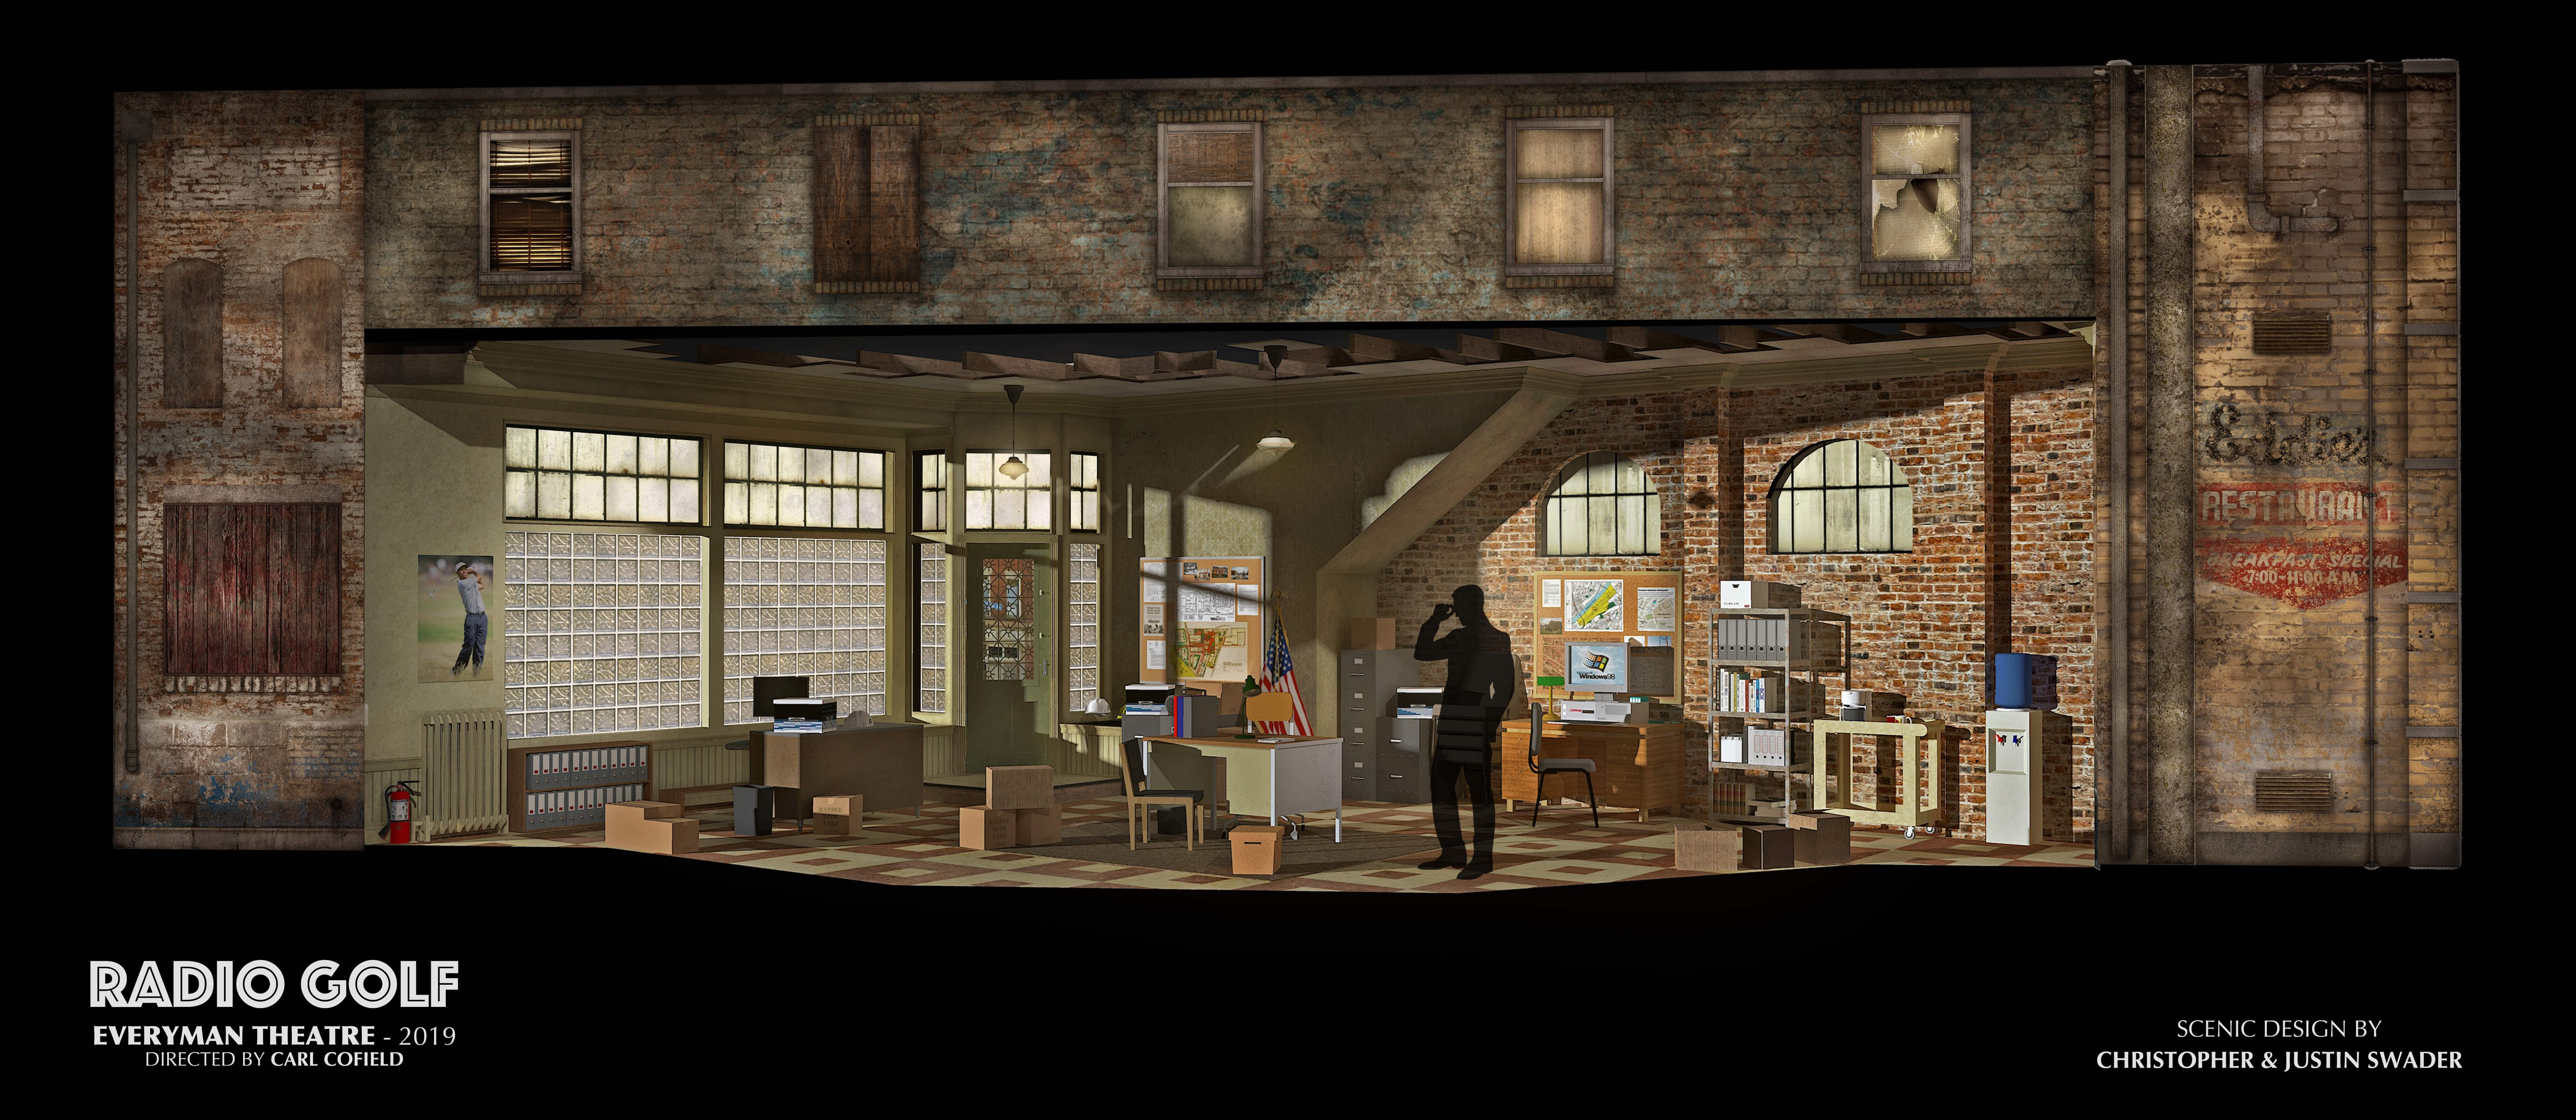 Artist rendering of the set of Radio Golf. Image provided by Everyman Theatre.